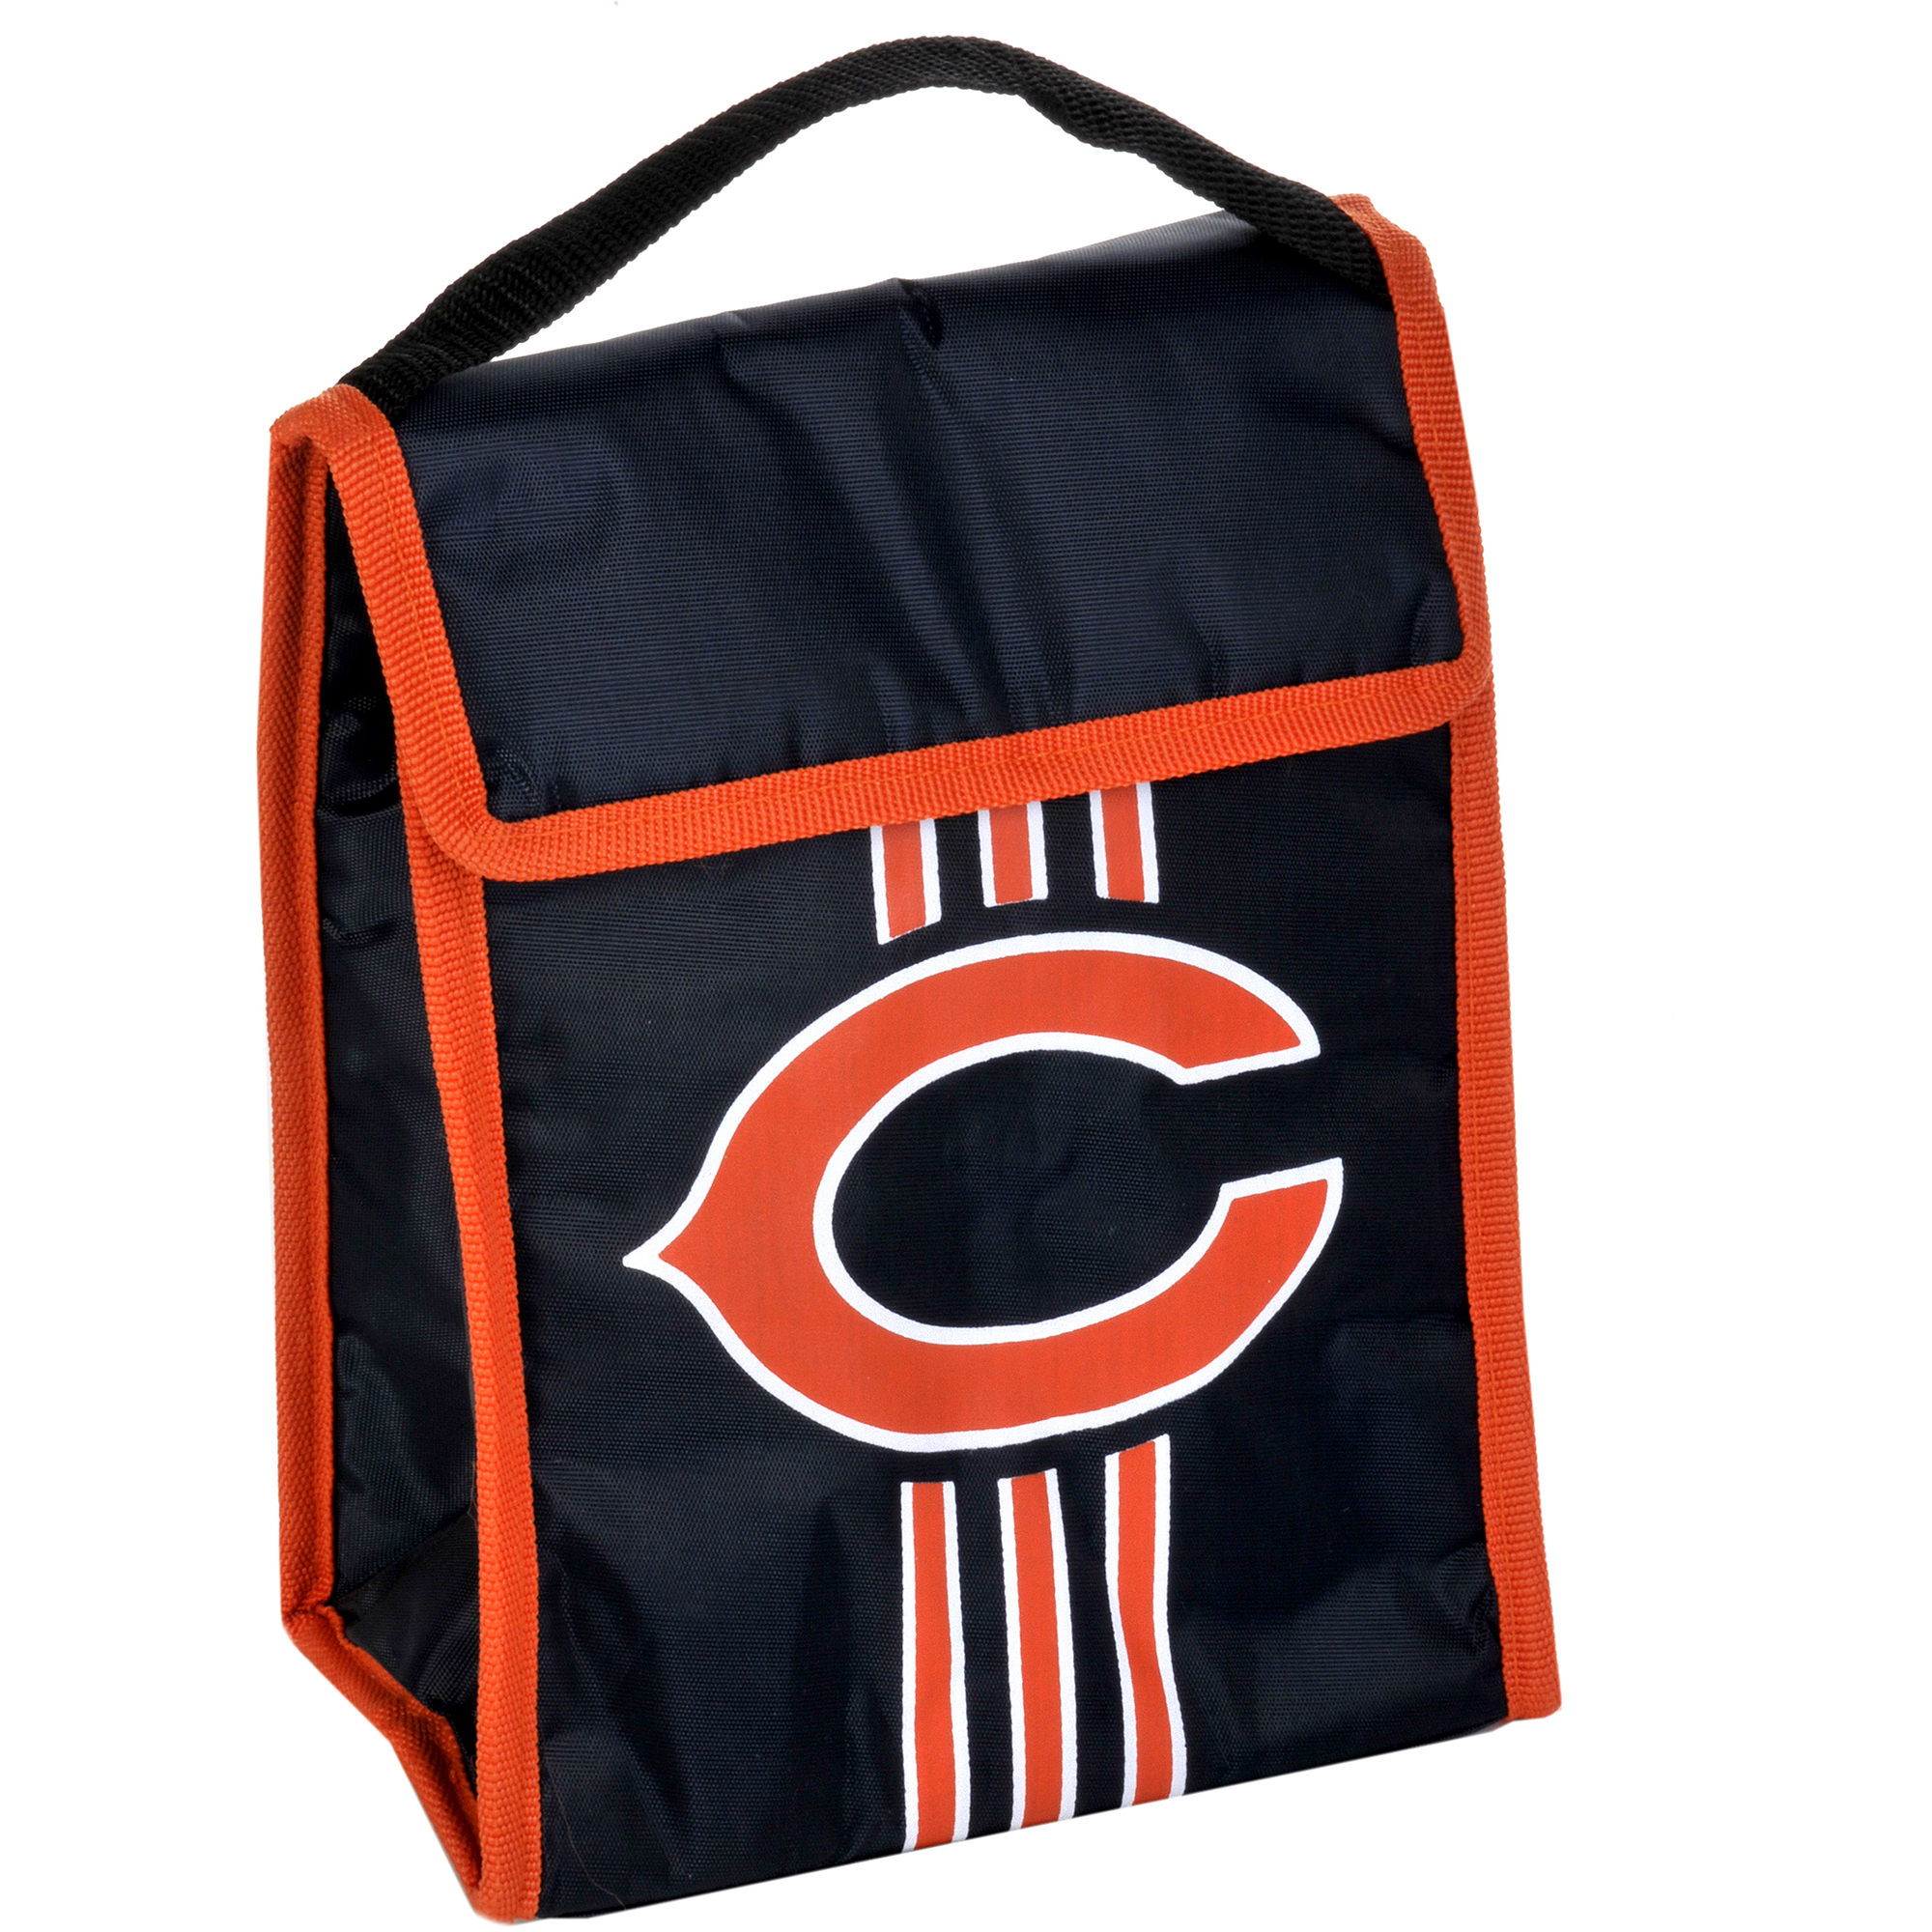 NFL Velcro Lunch Bag - Chicago Bears